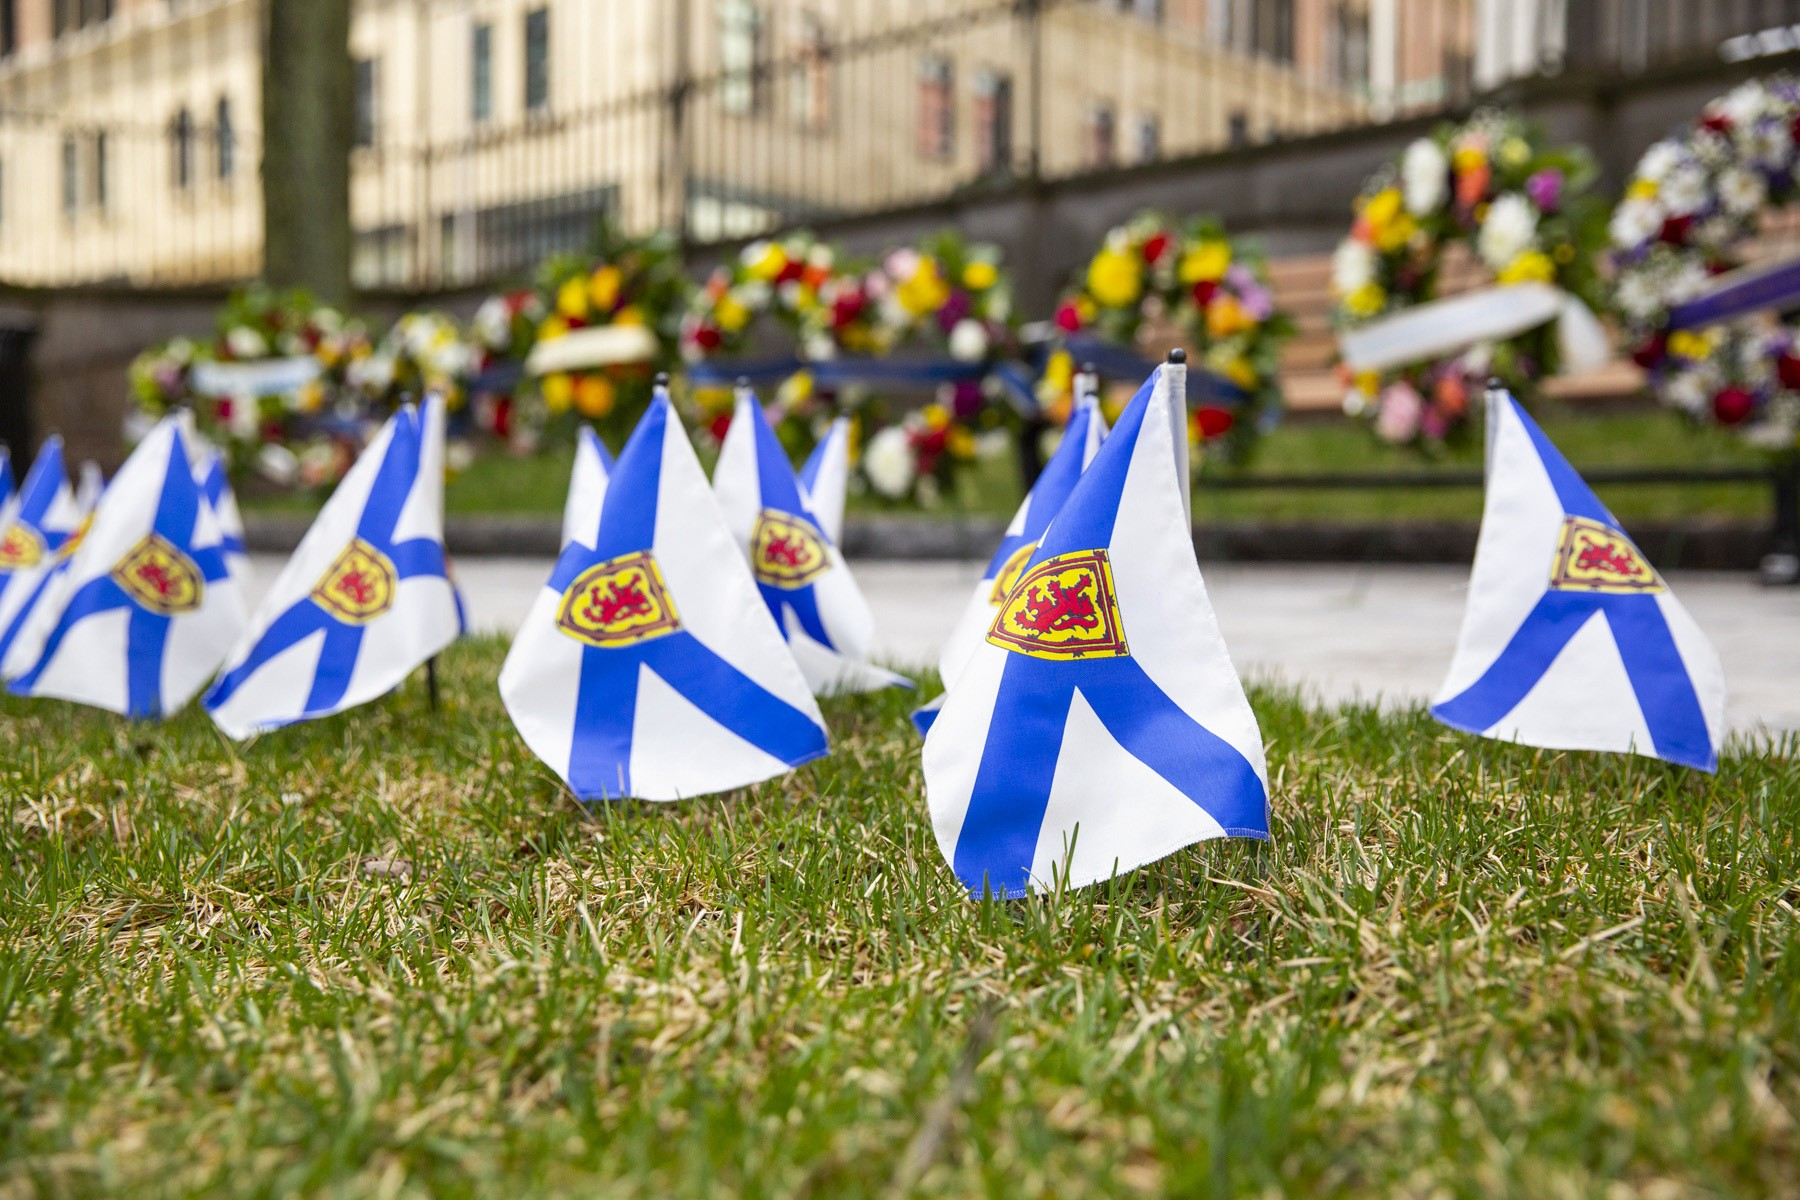 Several Nova Scotia flags in front of wreaths.